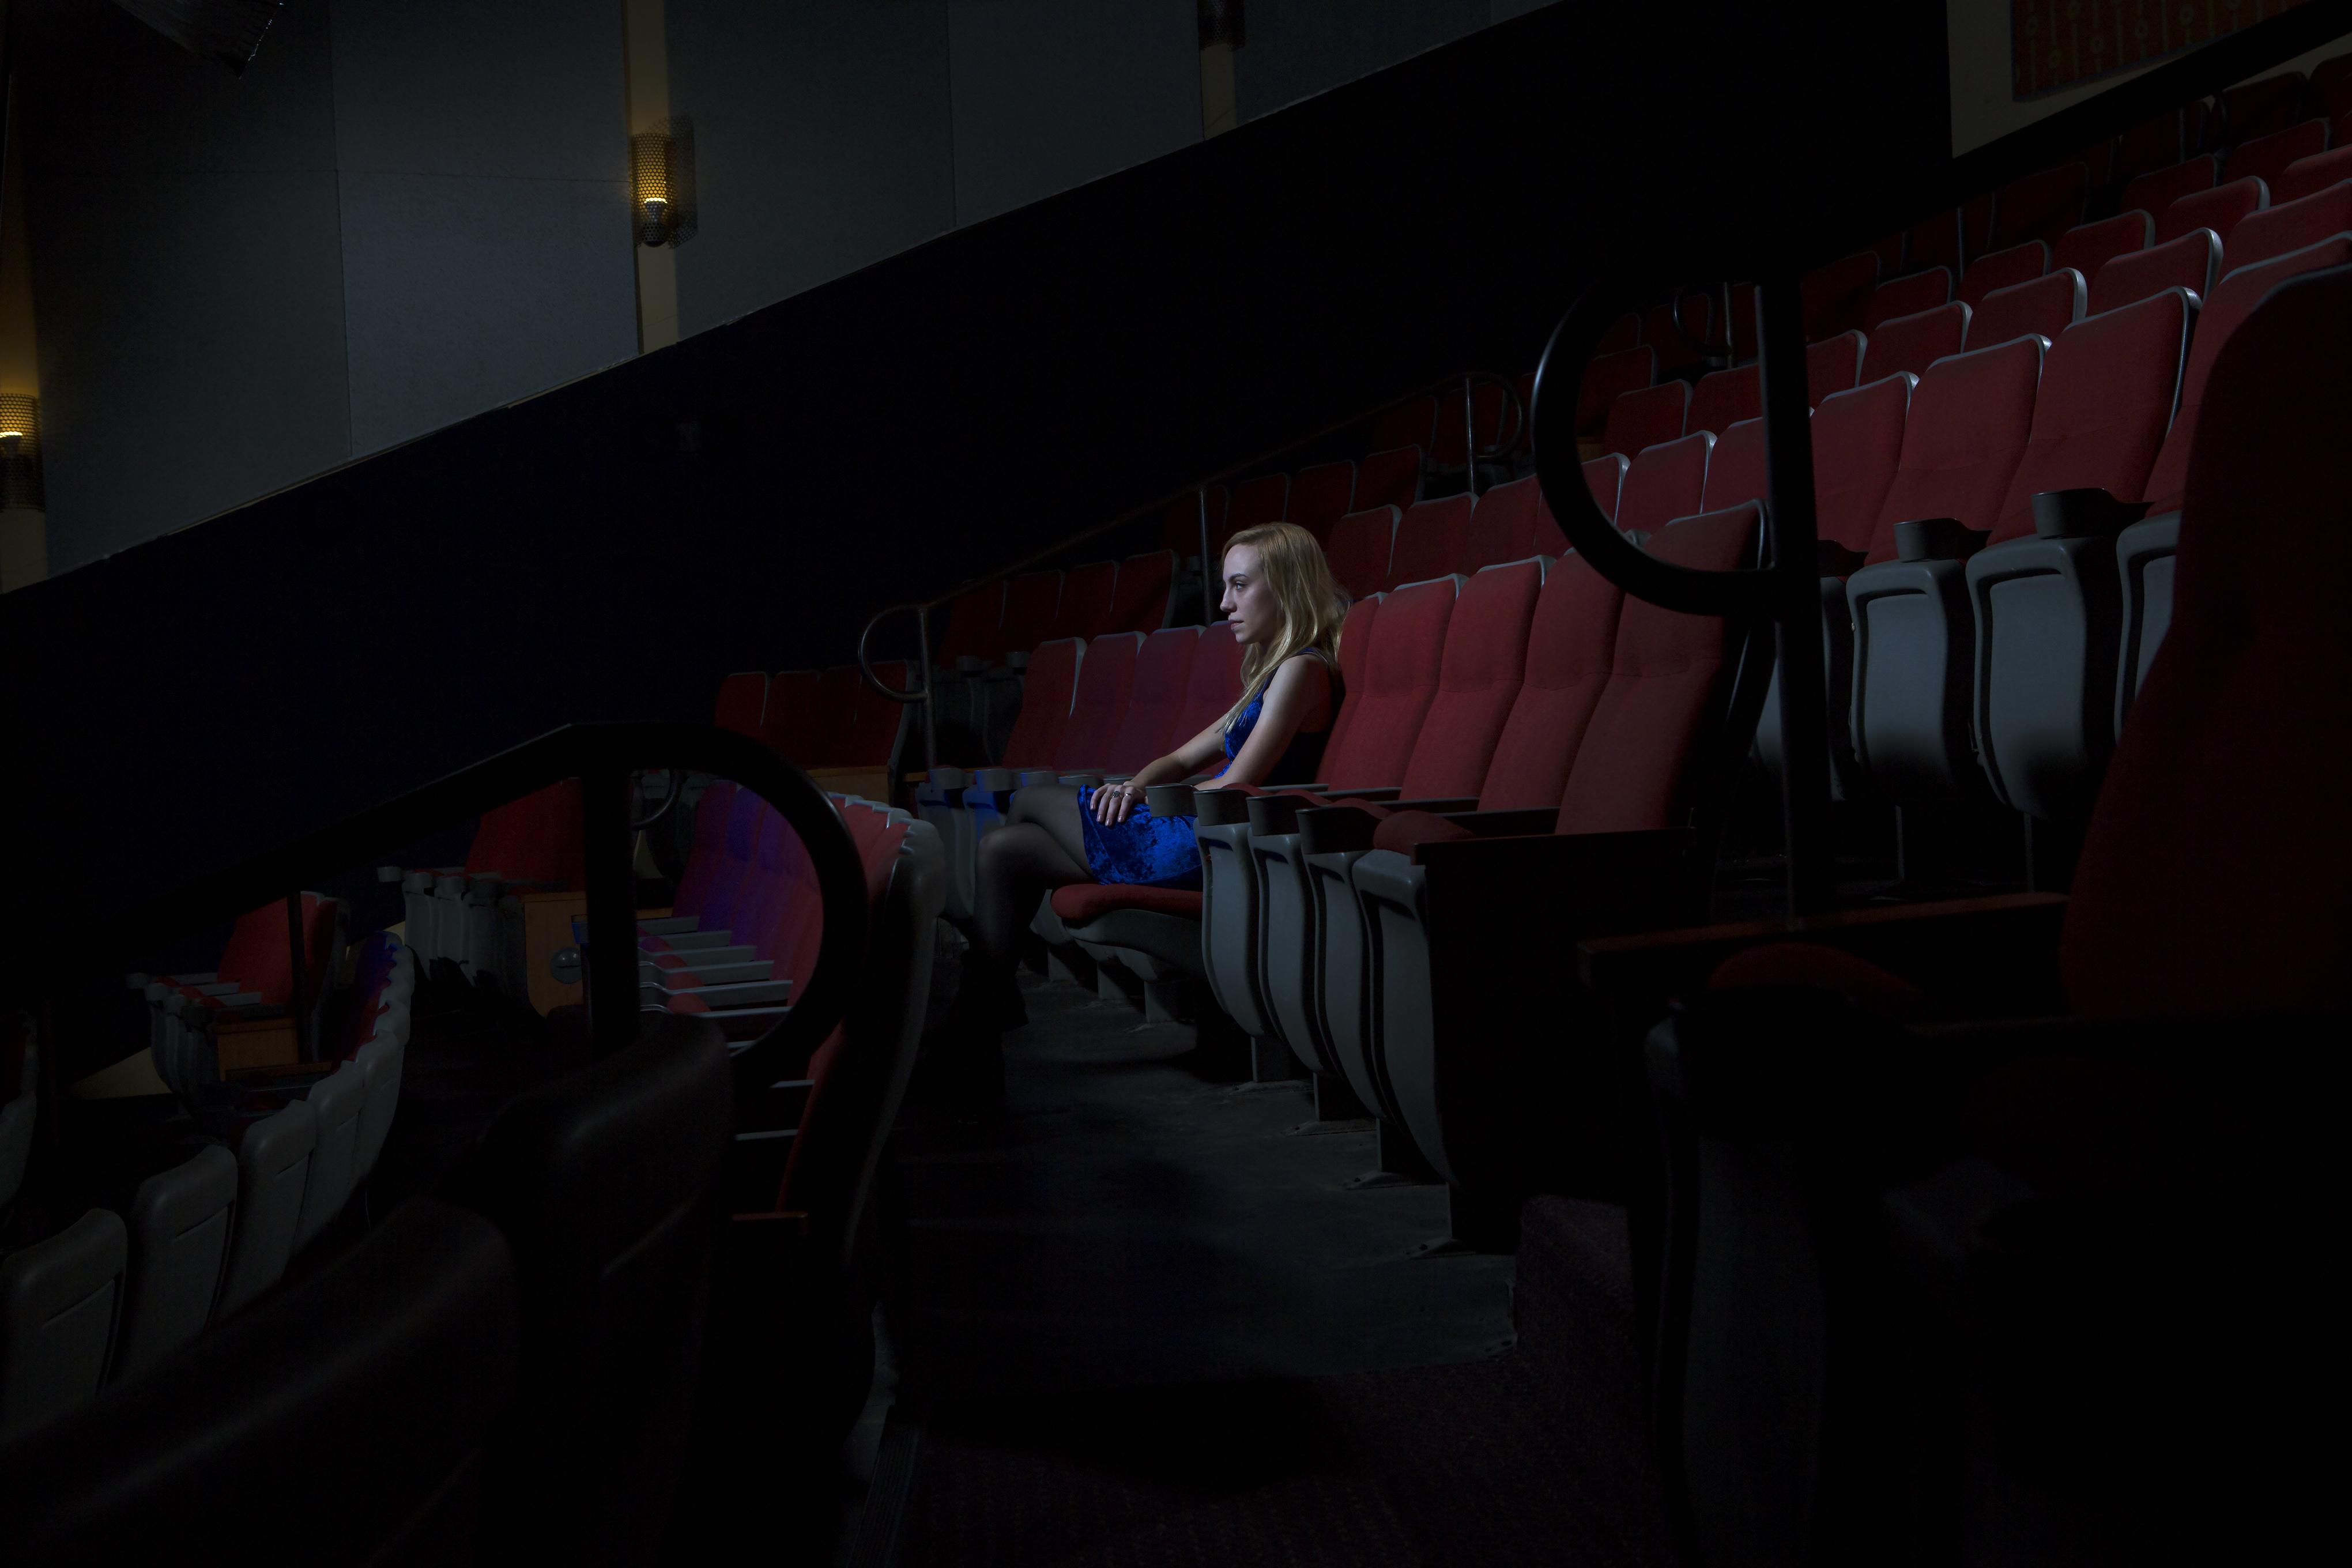 Woman sitting alone at movie theatre.